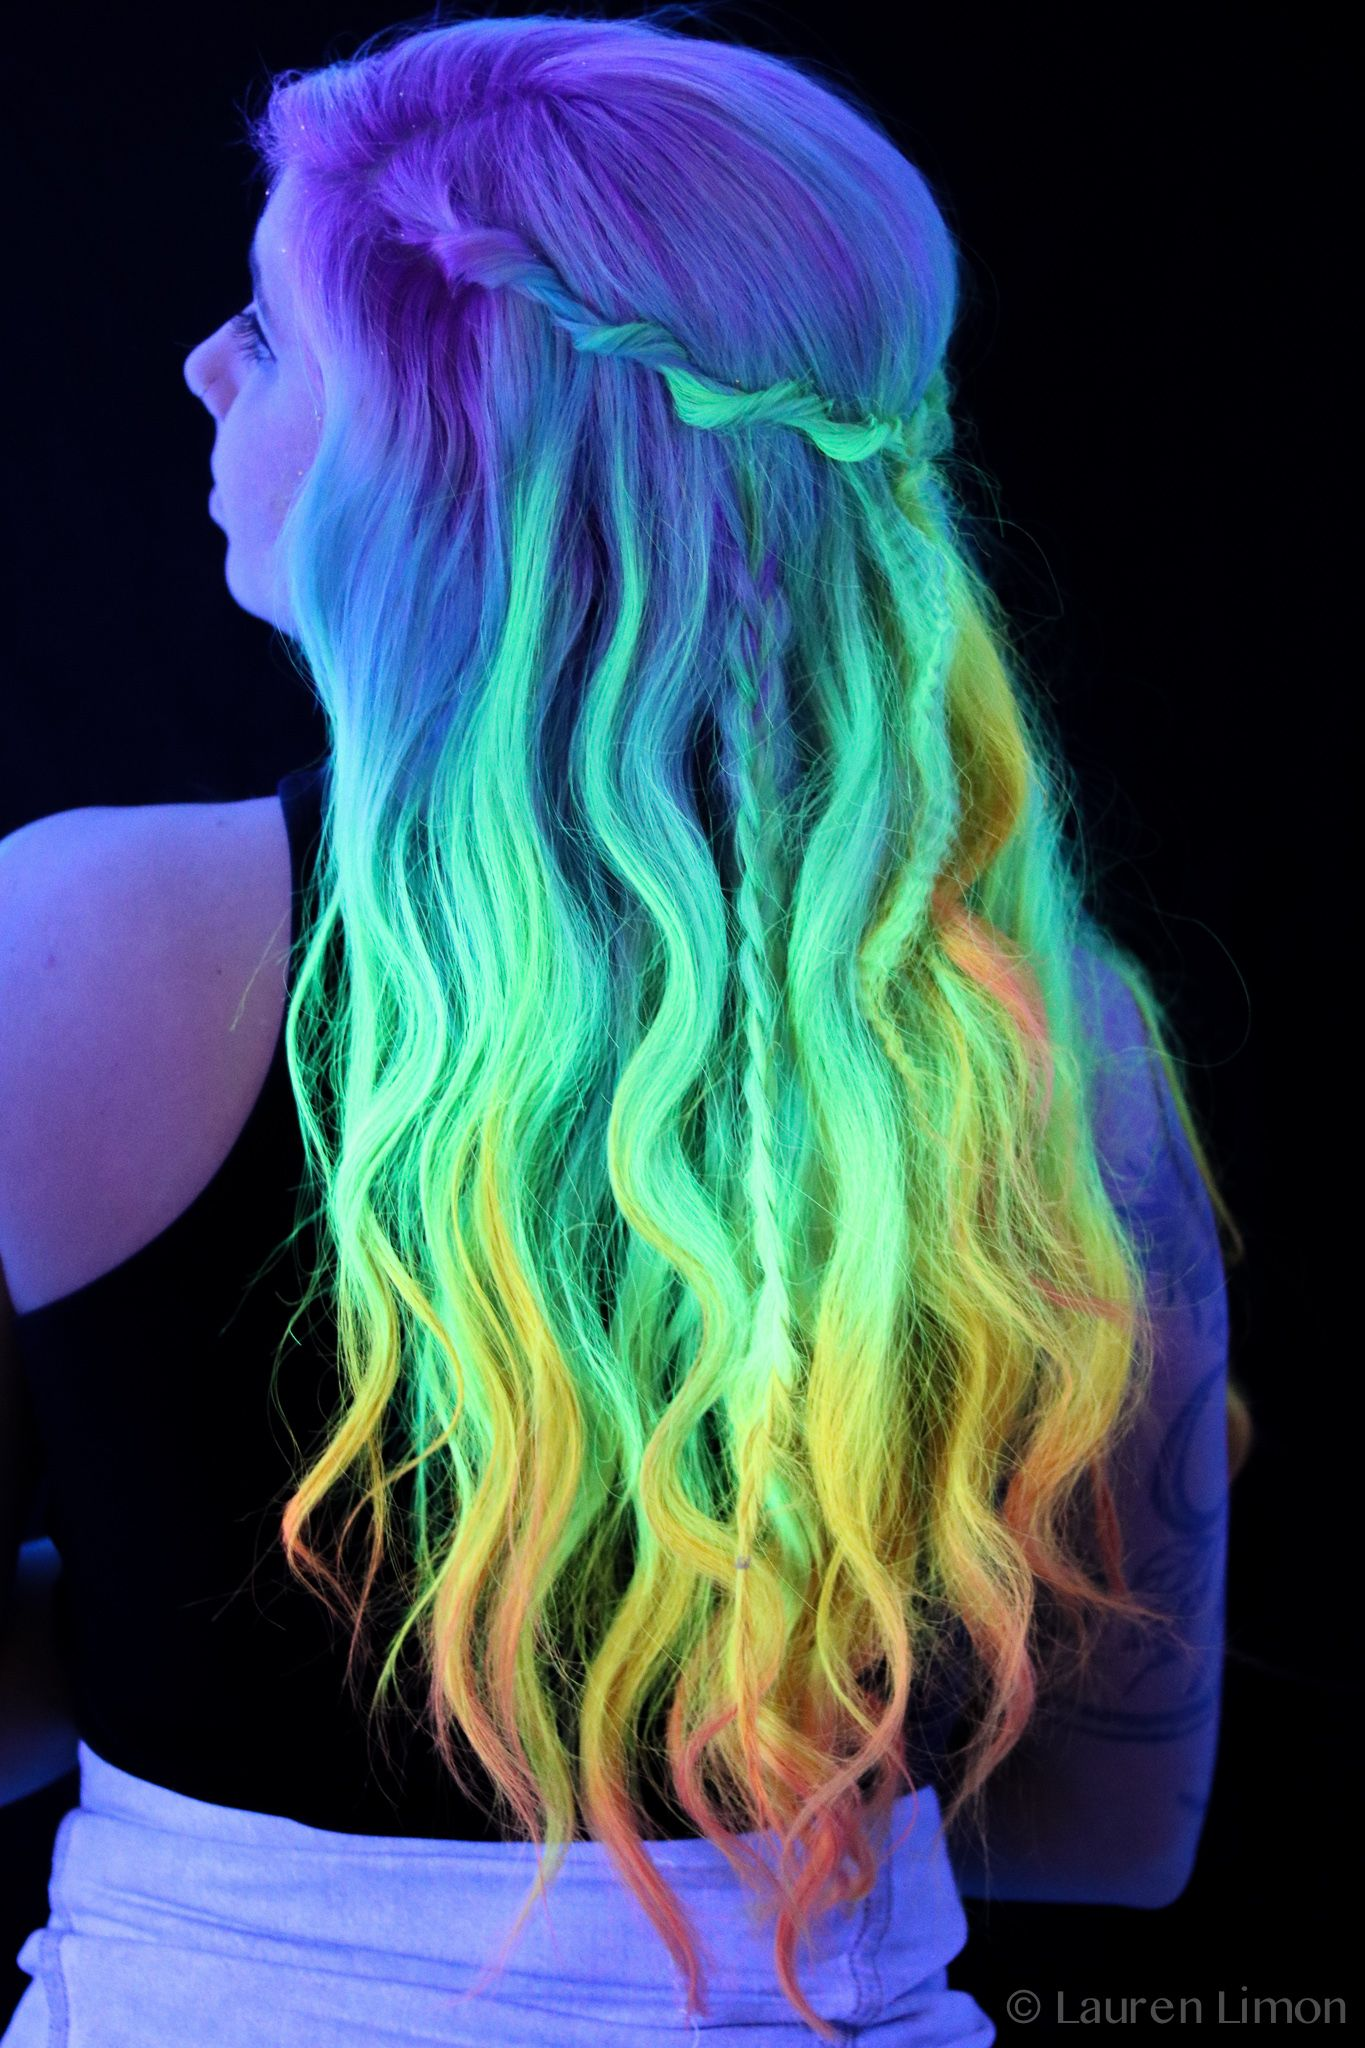 Gorgeous Blacklight Photo Taken By Lauren Limon Of My New Kenra Neon Hair Contest Entry Not Quite Glow In The Dark But Very Uv Reactive